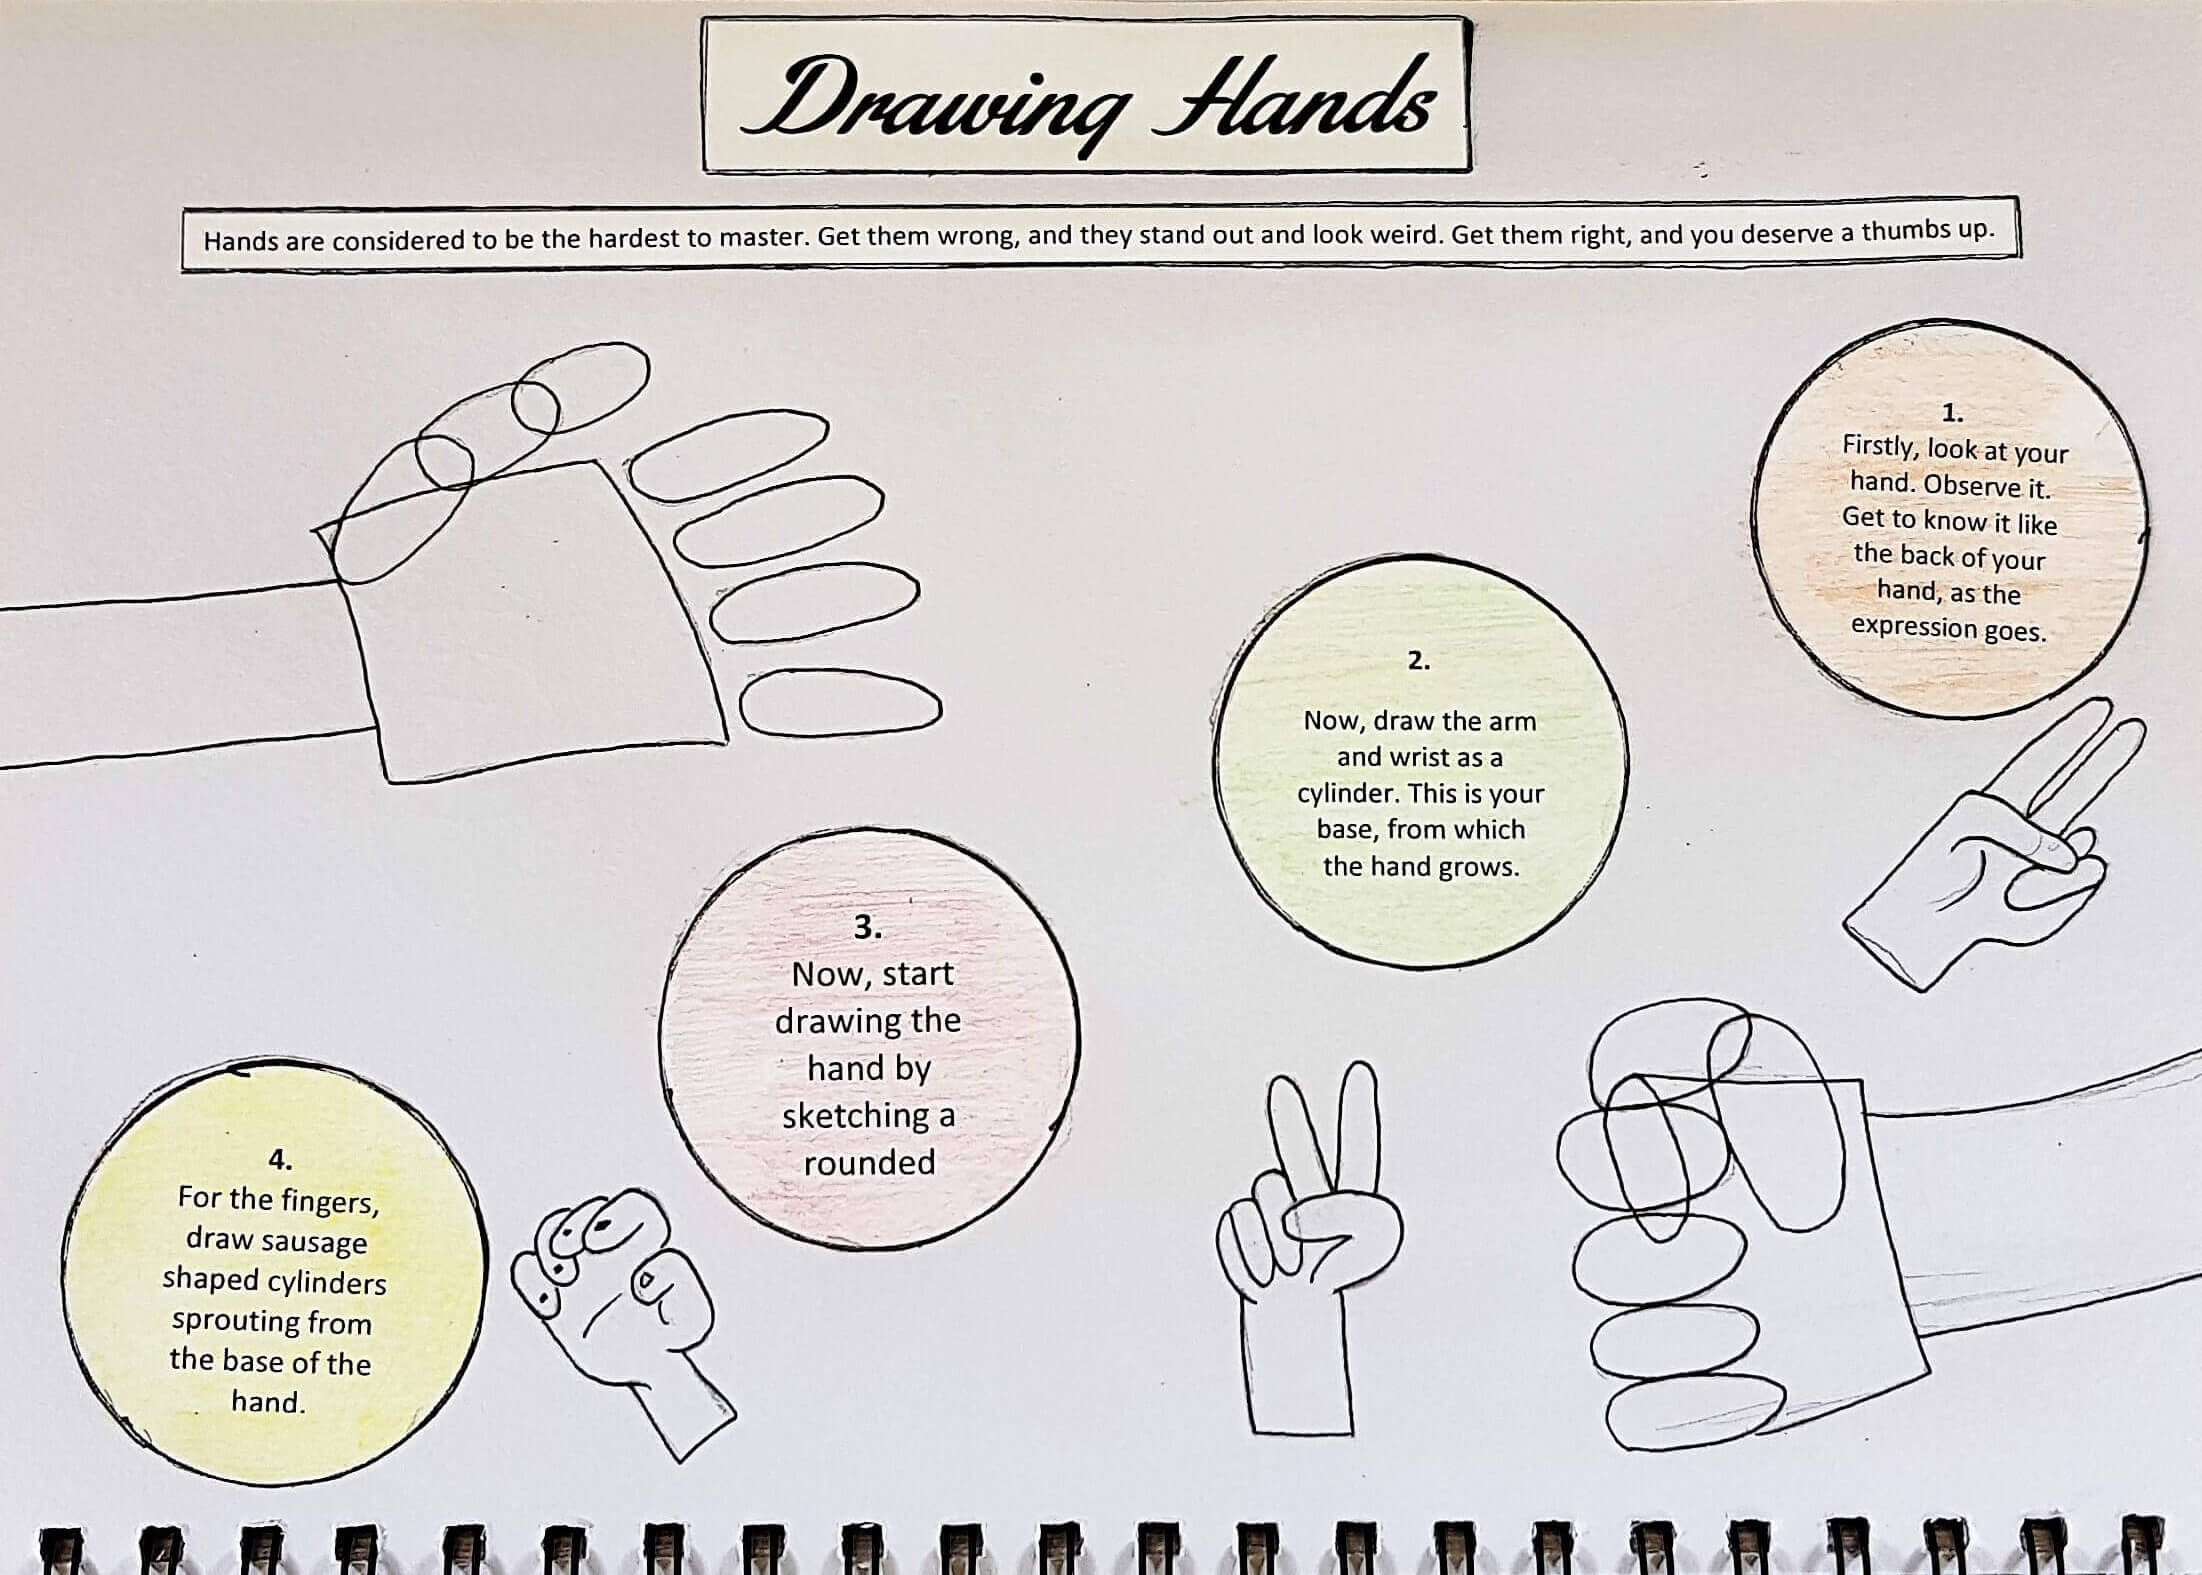 Day 5: Drawing hands